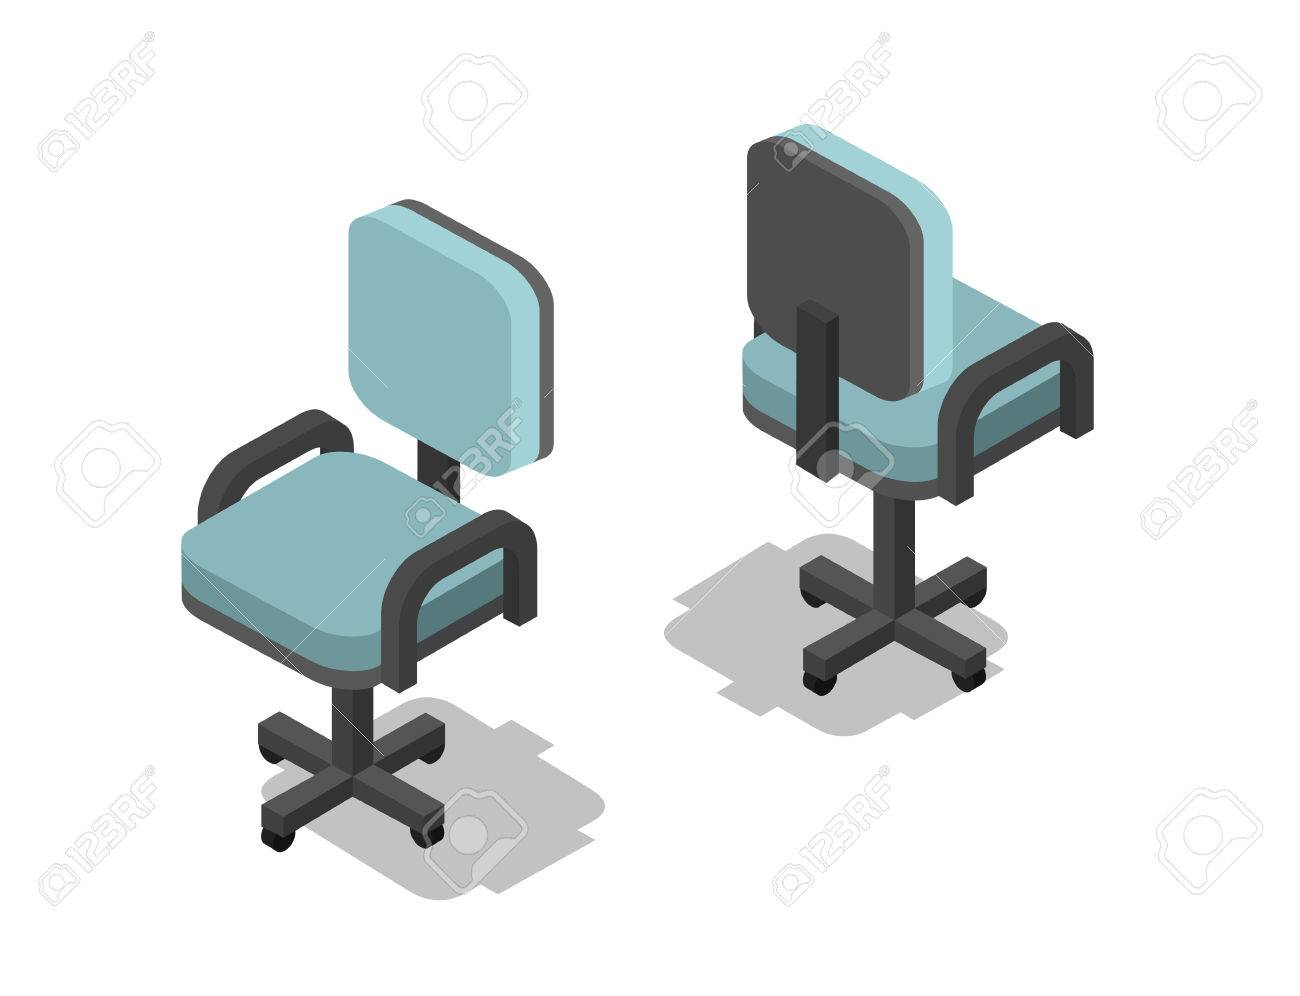 Vector Isometric Illustration Of Office Chair 3d Flat Furniture Icon Interior Design Info